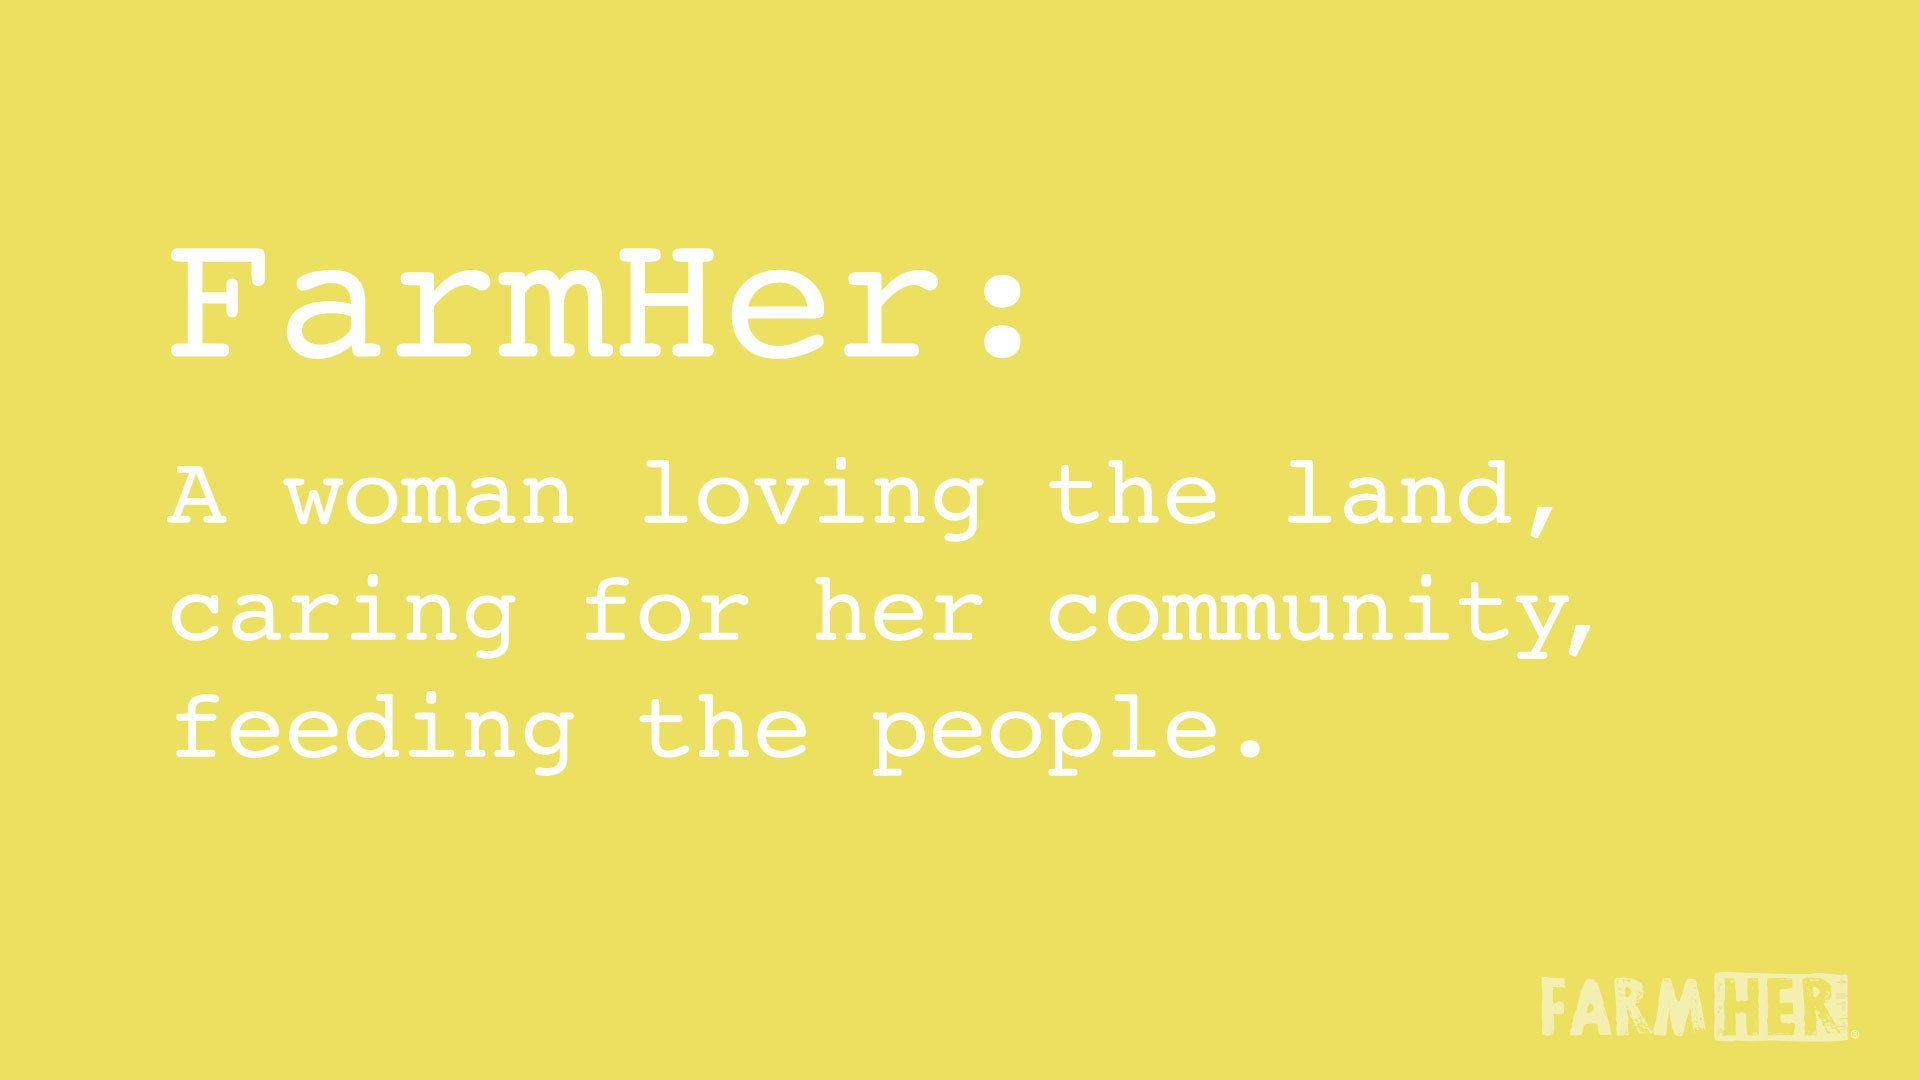 FarmHer Definition: A Woman loving the land, caring for her community, feeding the people.